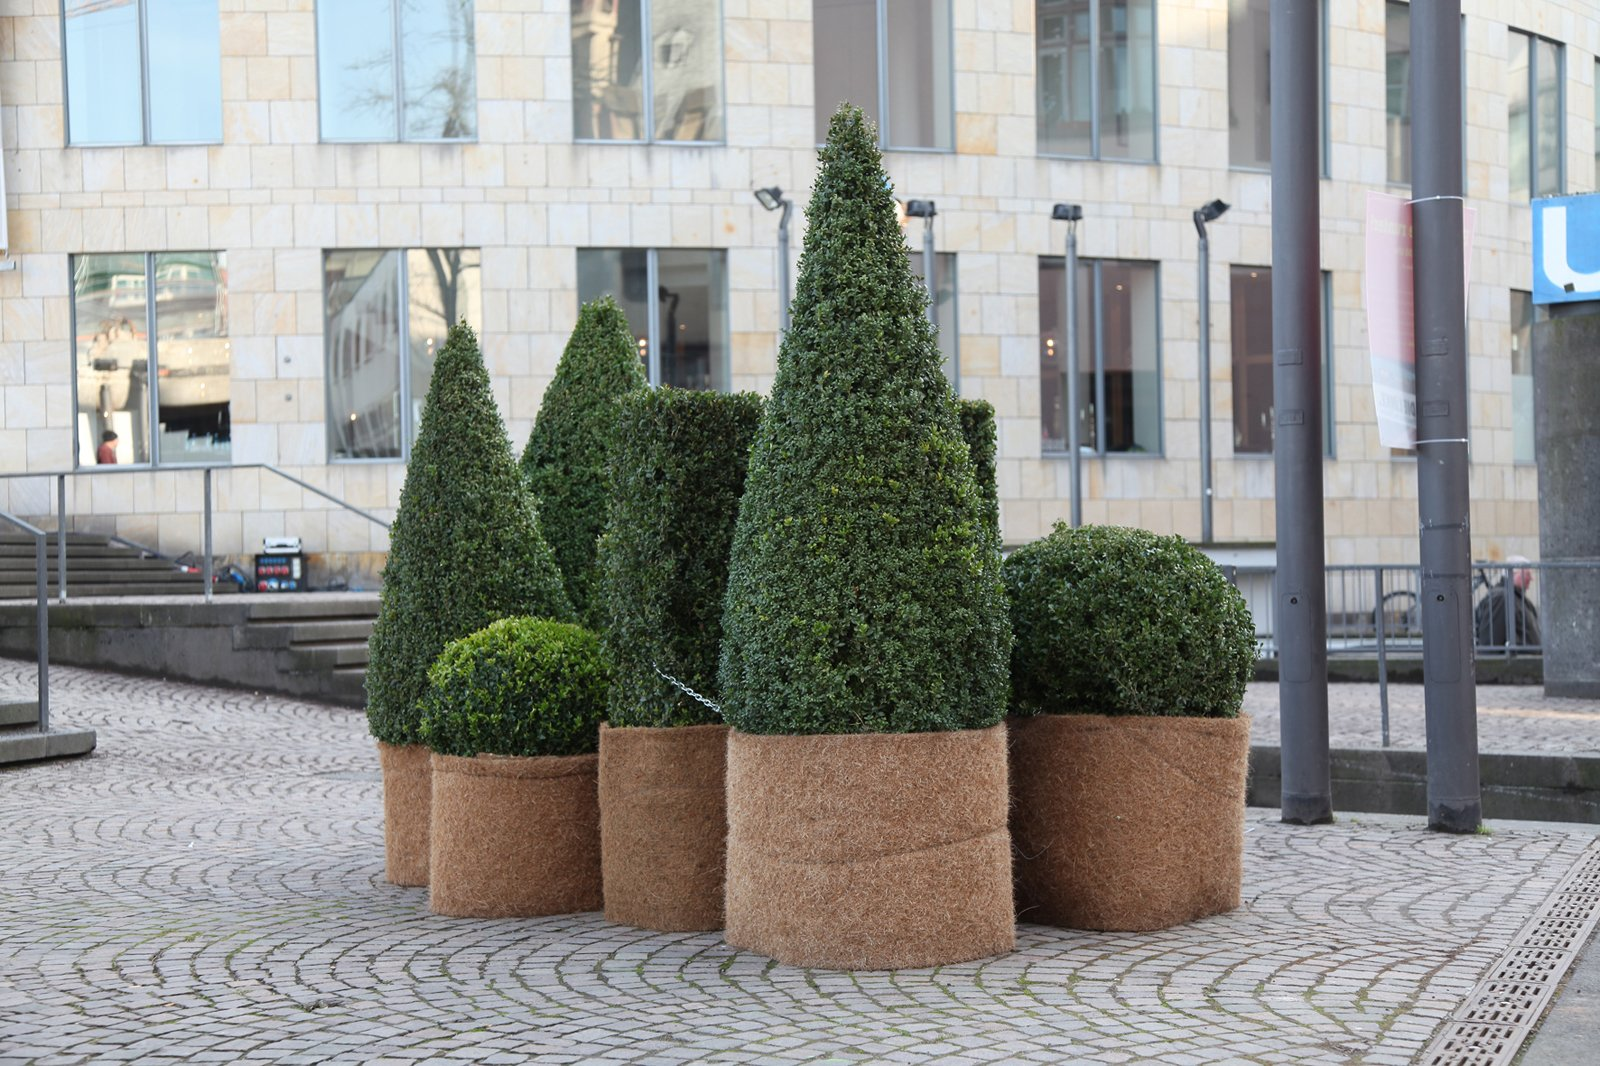 Maria Loboda's installation at Frieze will utilize topiary as seen in an earlier work,The bad boys of Harvard, 2011. Topiary. Photo courtesy of the artist and Schleicher/Lange.  Photo 5 of 6 in Frieze Art Fair: 7 Things Not to Be Missed